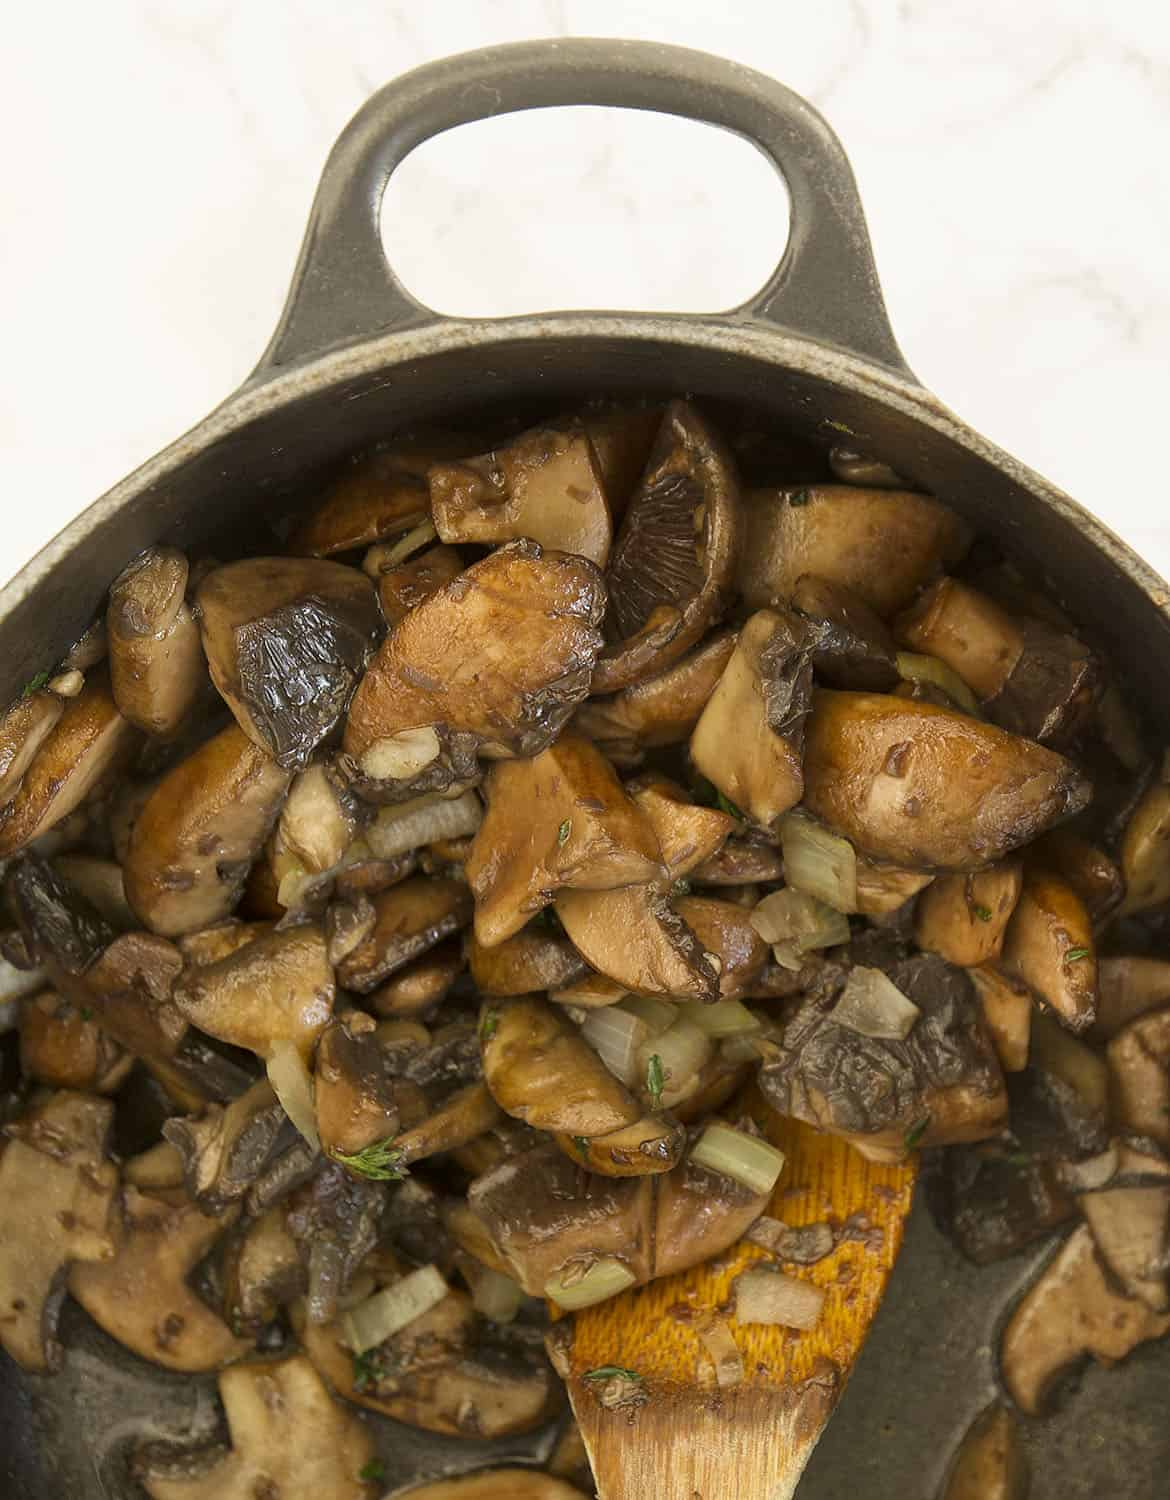 A wooden spoon stirring mushroom in a black cast iron casserole.